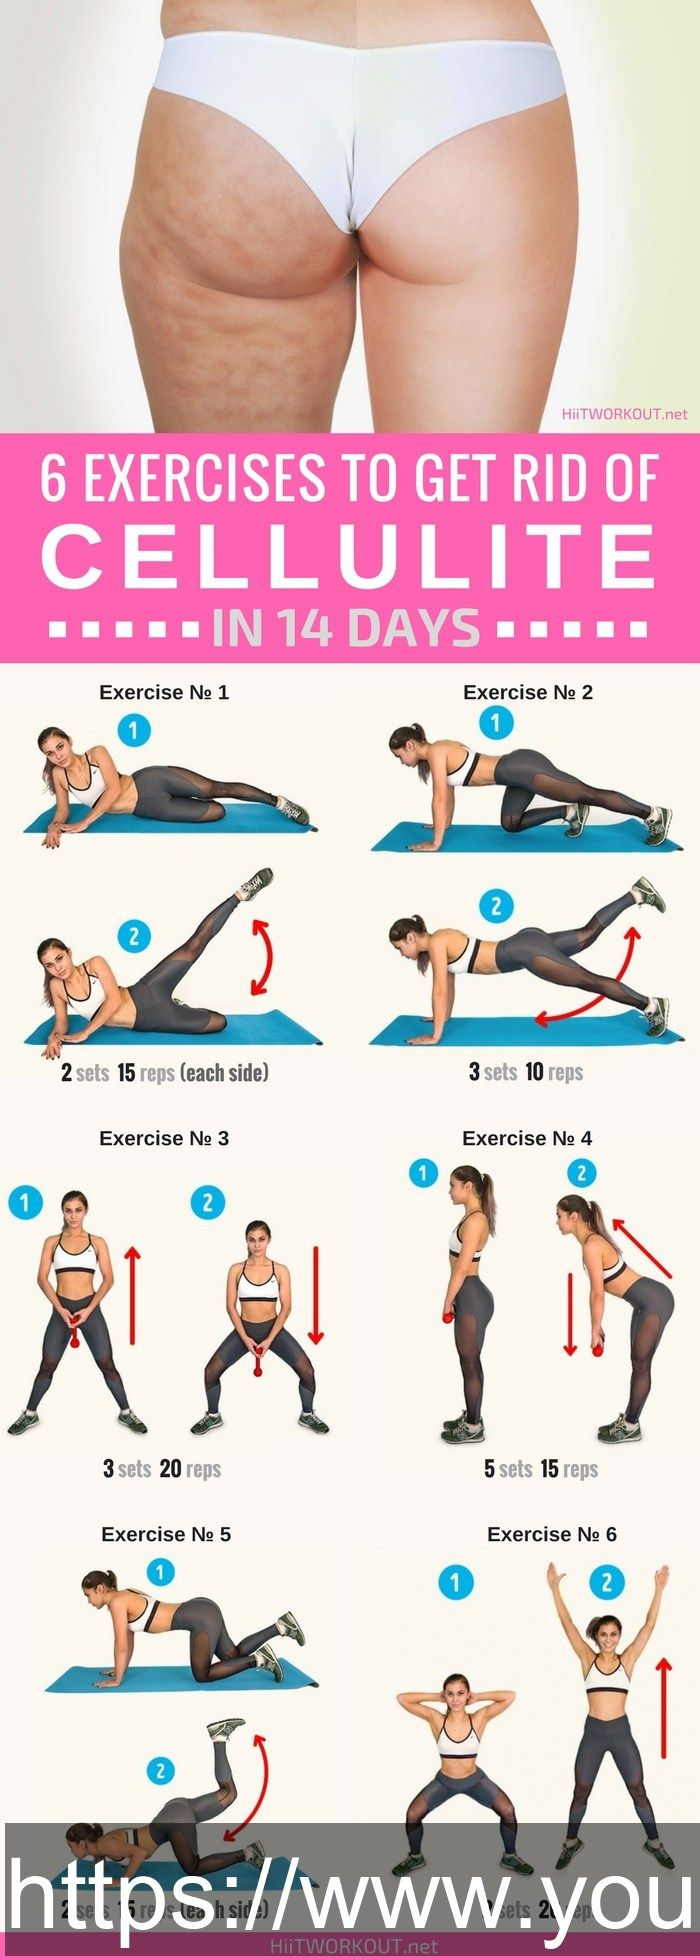 Getting them butts into shape ! #fitnesshacks #fitness #workout #exercise #weightloss #healthy